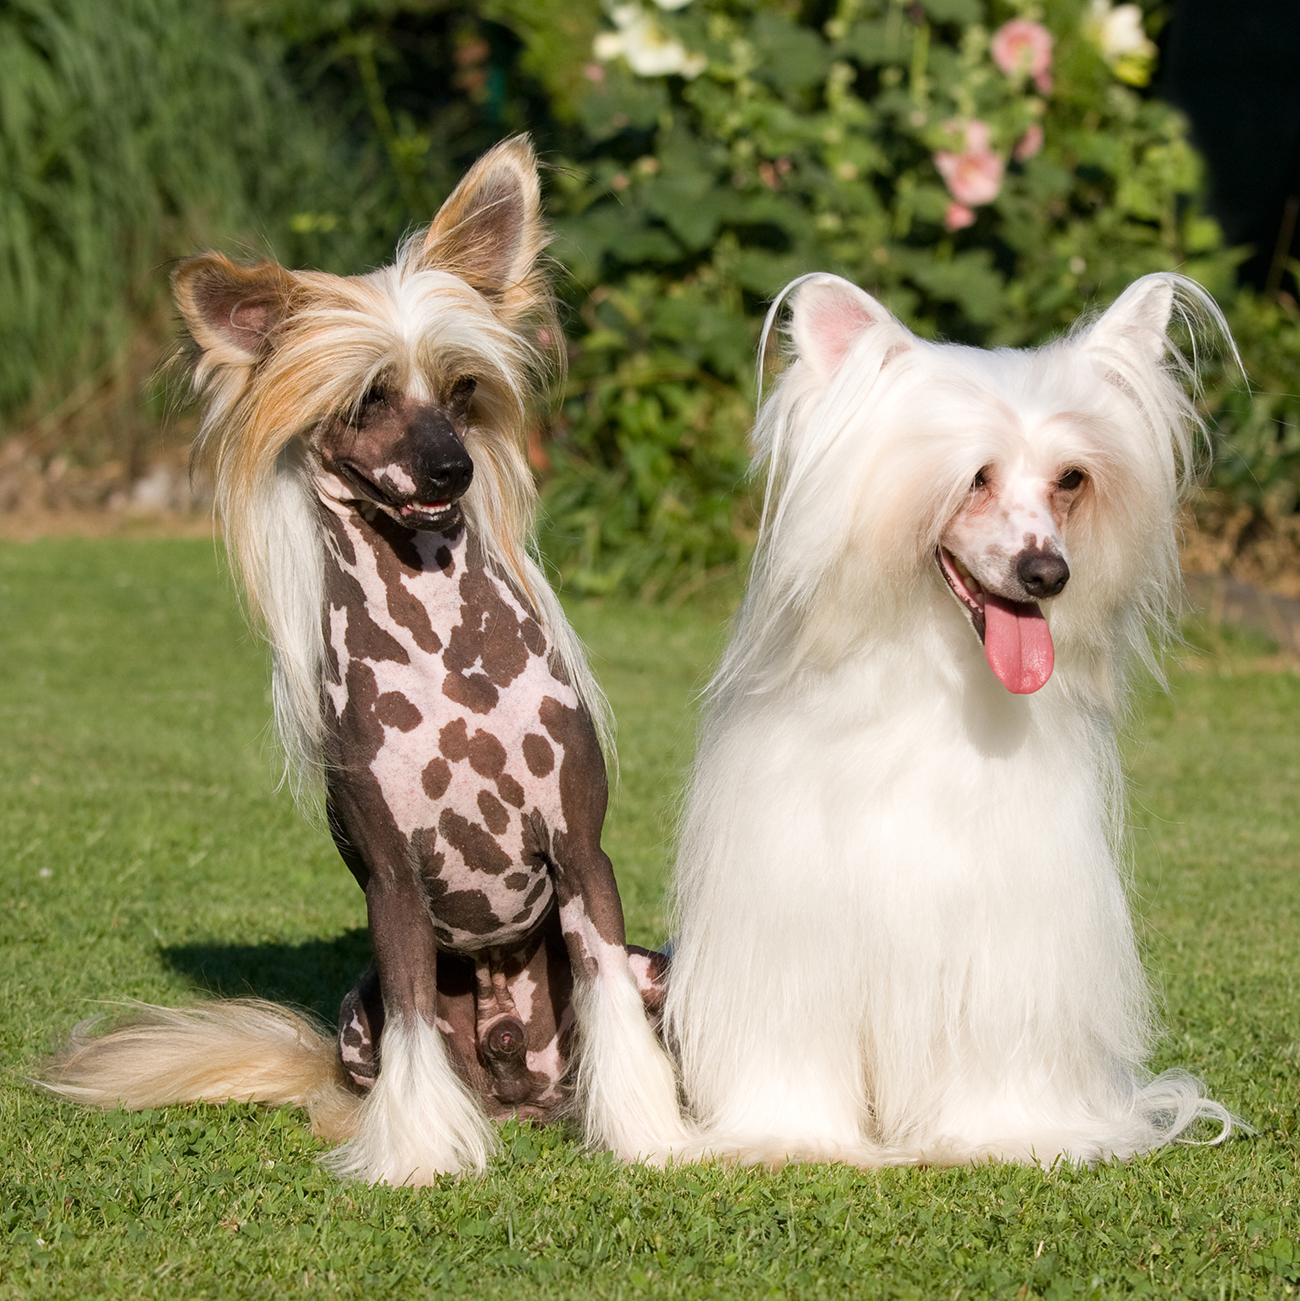 Hairless and white Chinese Crested pair stand next to each other in grass